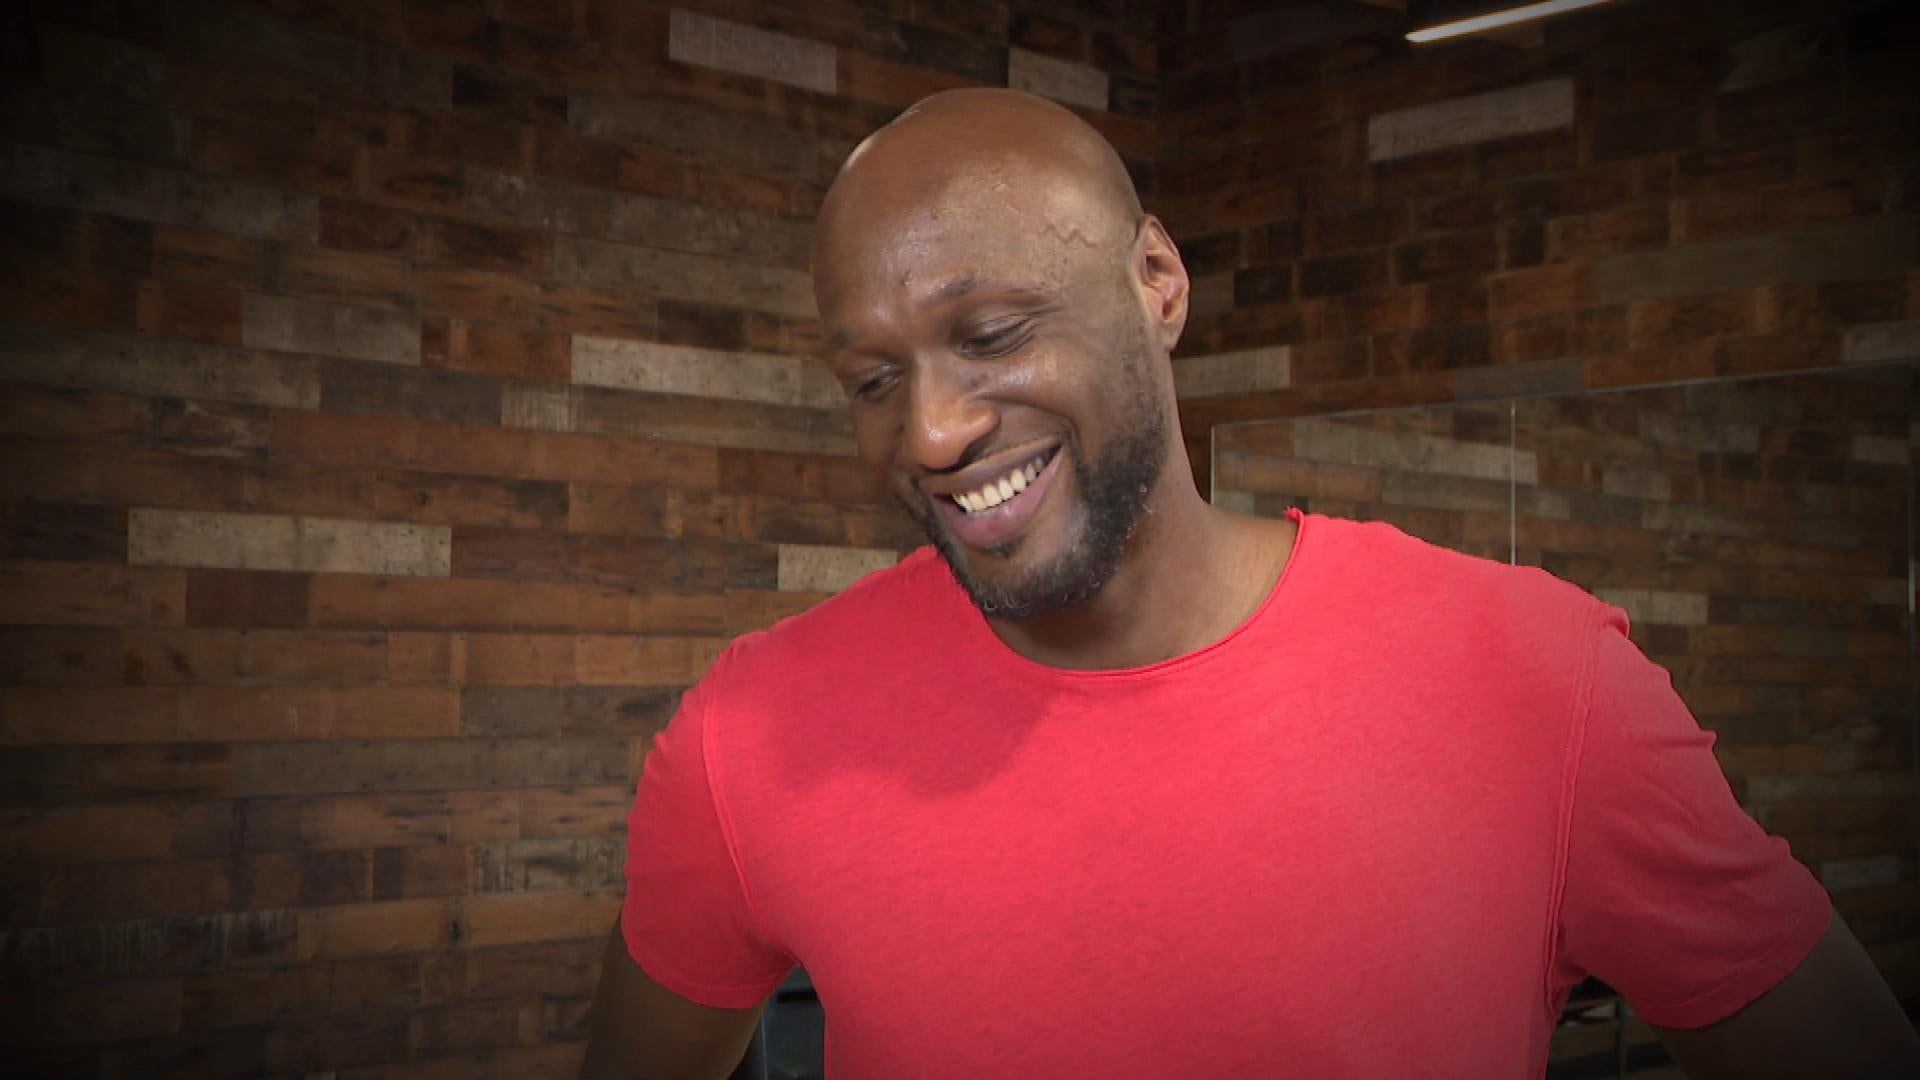 'Dancing With the Stars' Premiere: Lamar Odom Receives One of the Lowest Scores in Show History